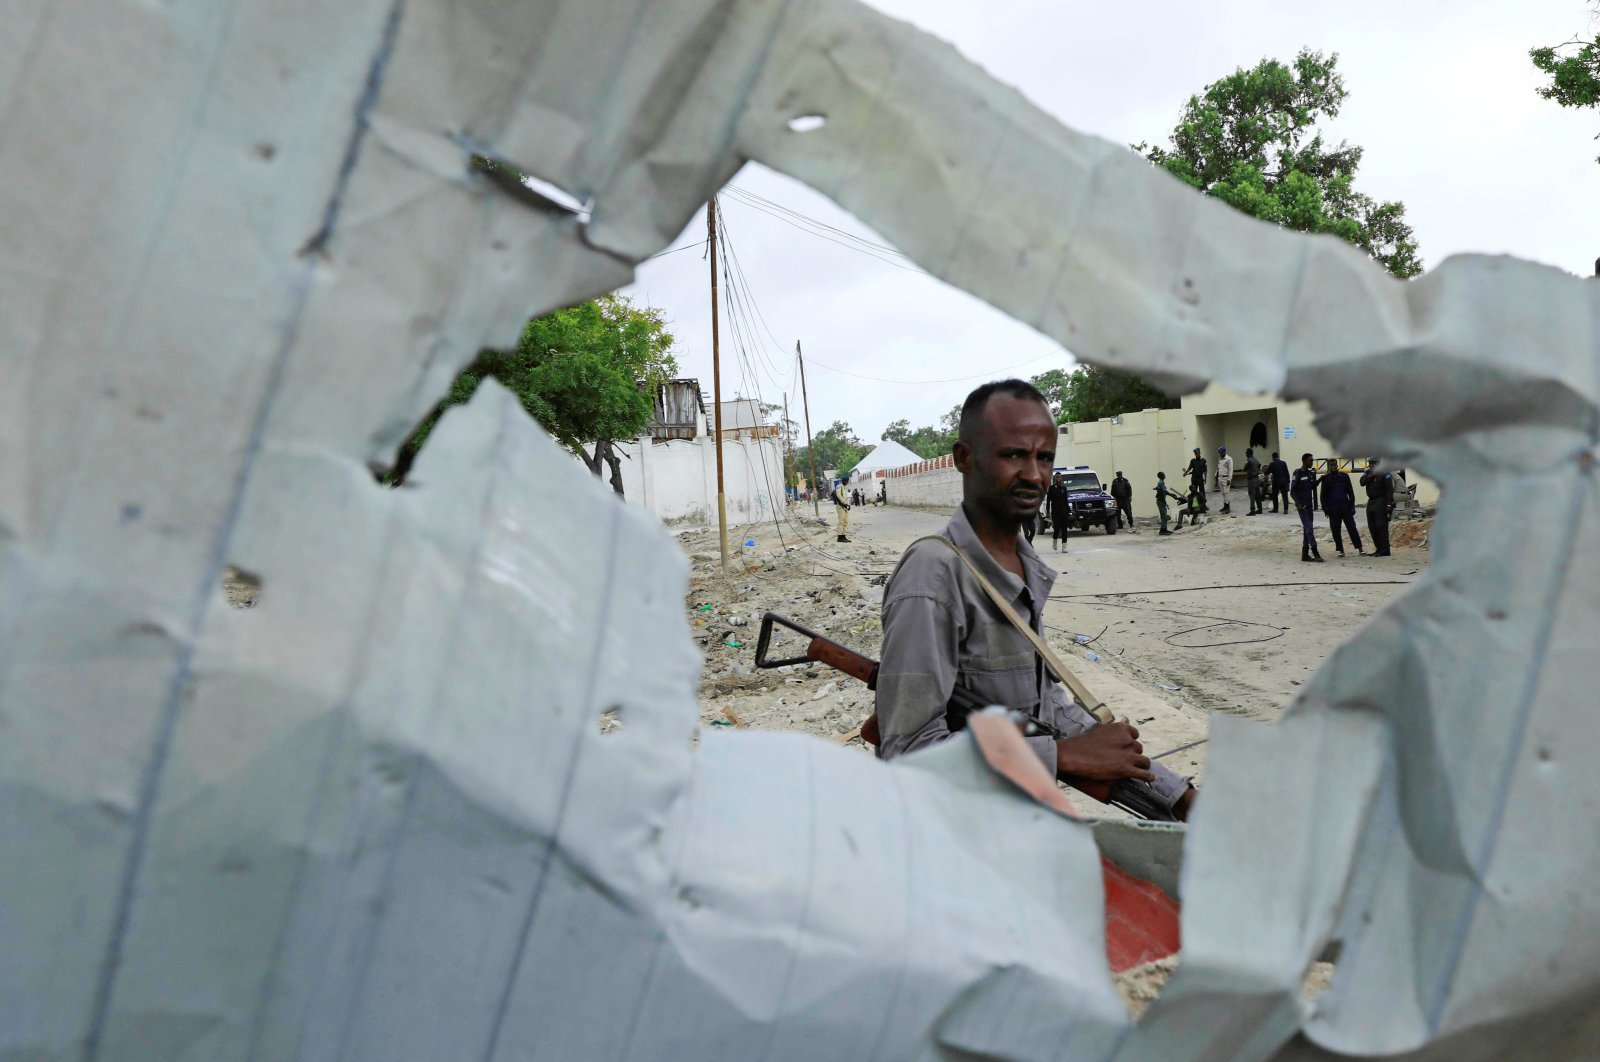 A Somali policeman walks at the crime scene after a suicide car bomber drove into a checkpoint outside the port in Mogadishu, Somalia, July 4, 2020. (Reuters Photo)